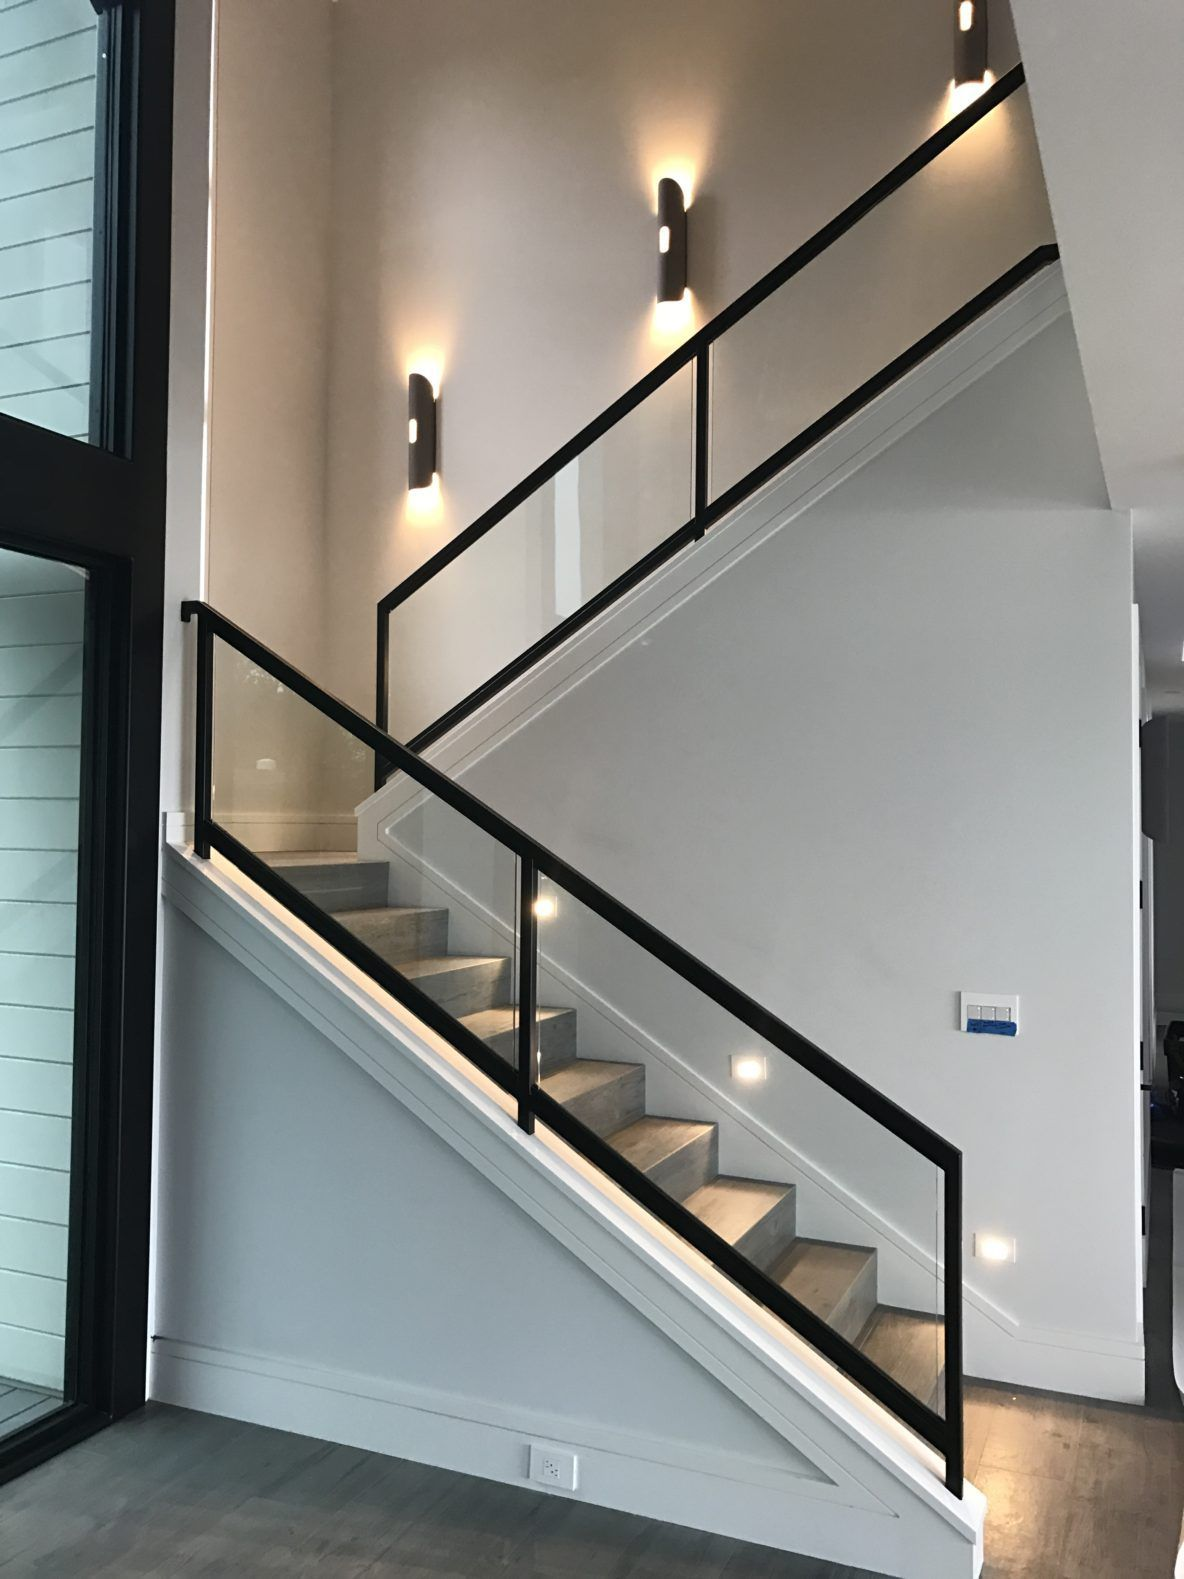 Steel And Wood Stairs With A Glass Handrail Lead Up To The | Wood And Glass Handrail